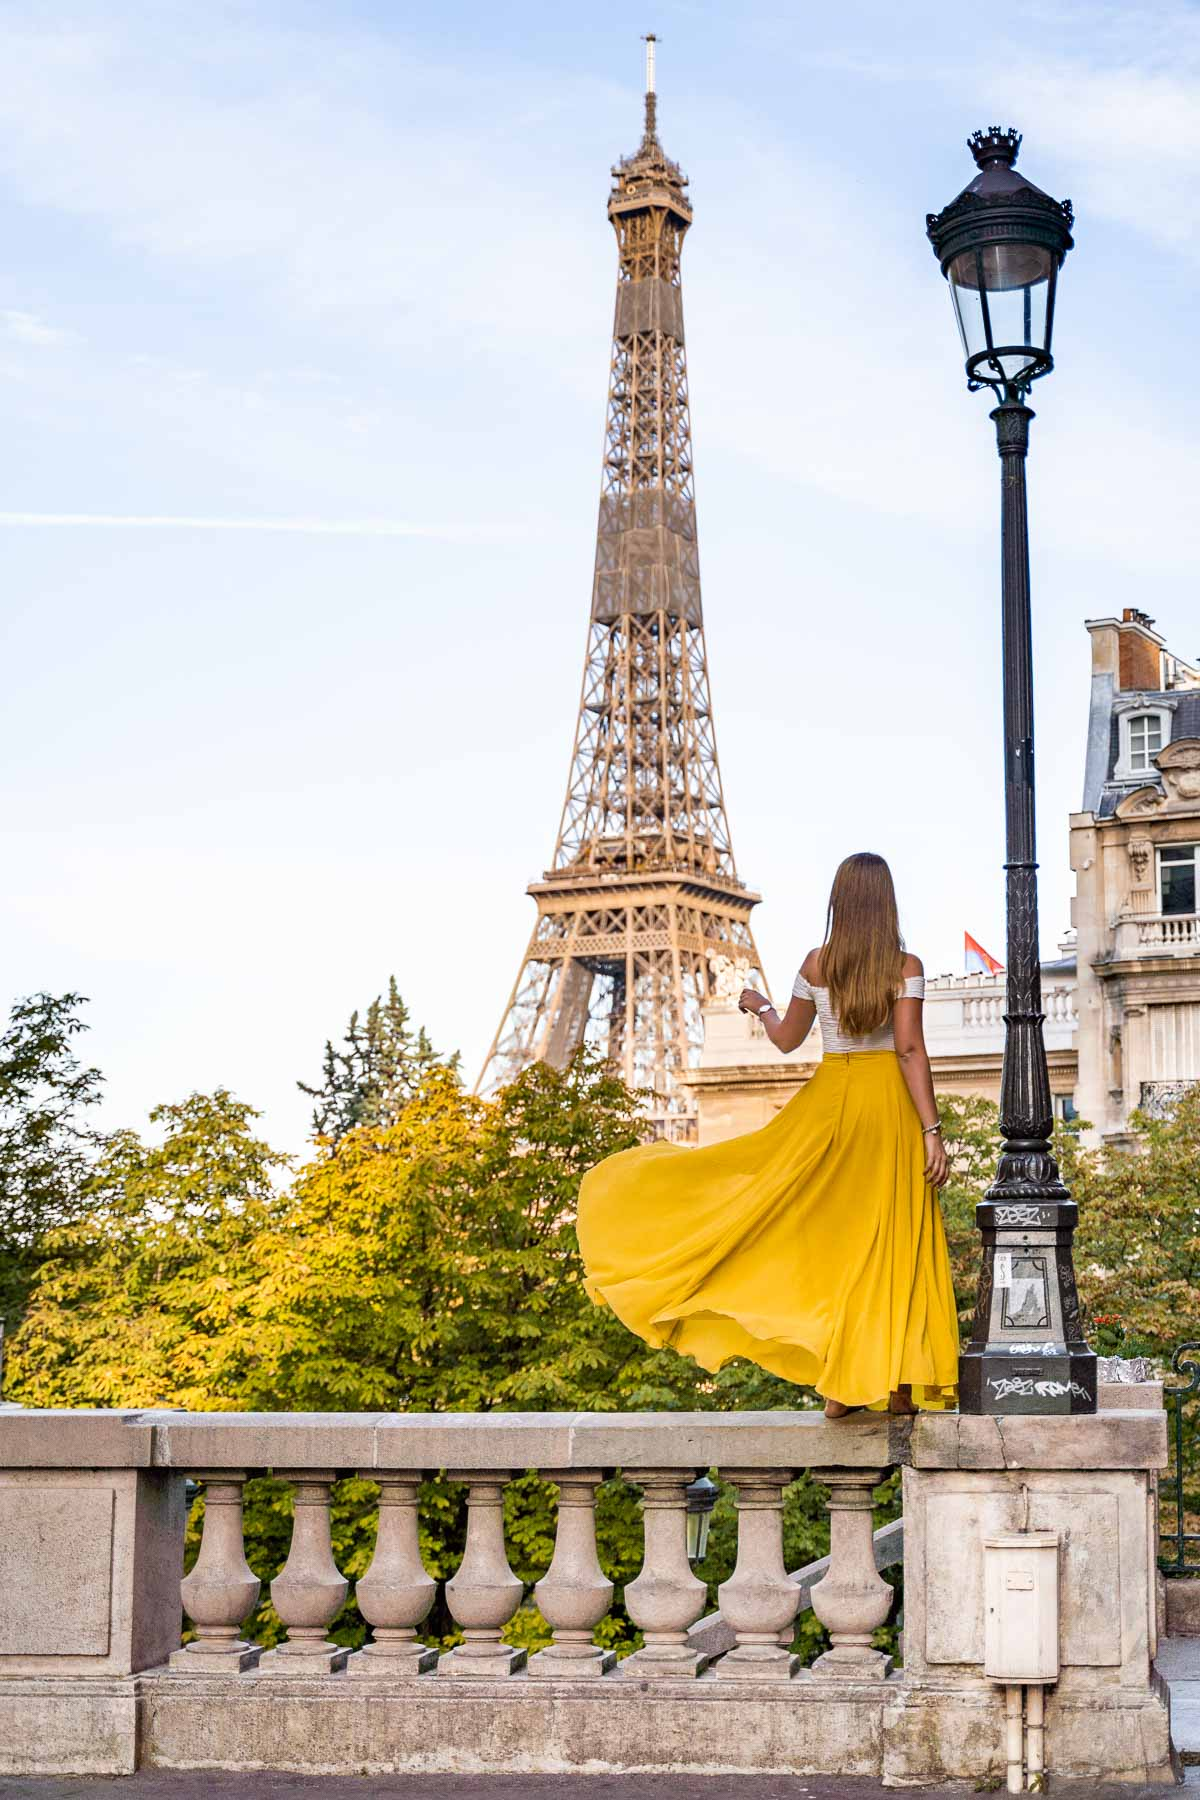 Girl in a yellow skirt twirling in front of the Eiffel Tower at Avenue de Camoens, Paris